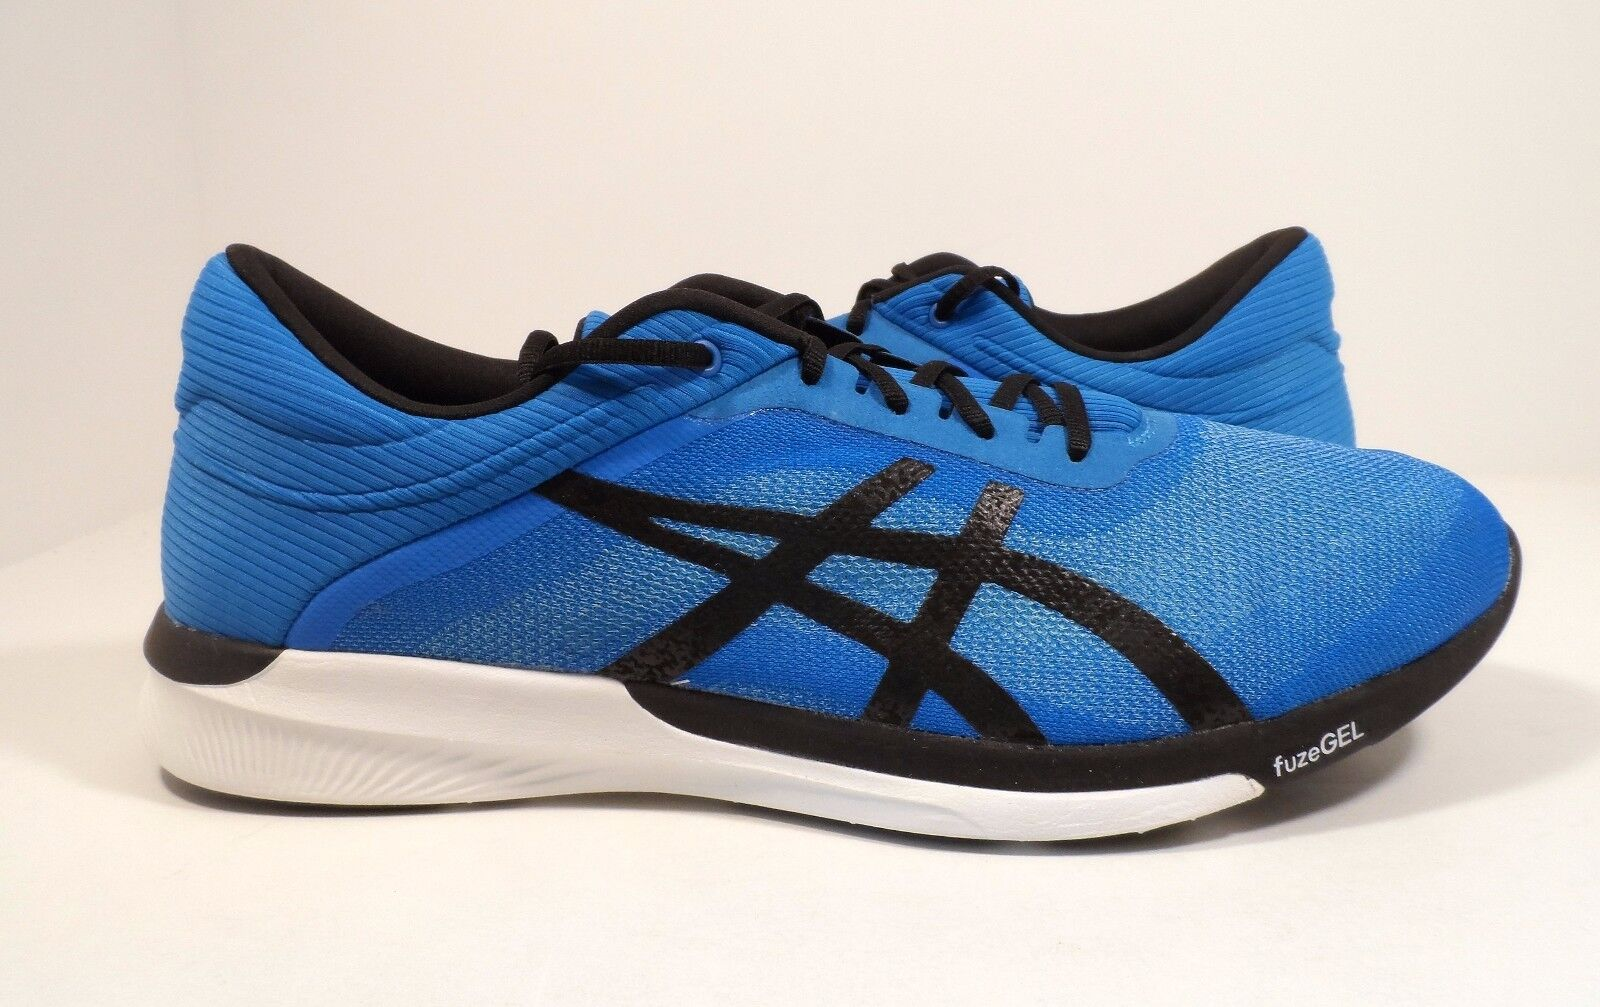 ASICS Men's FuzeX Rush Running shoes Aqua Splash Black Diva bluee Size 7.5